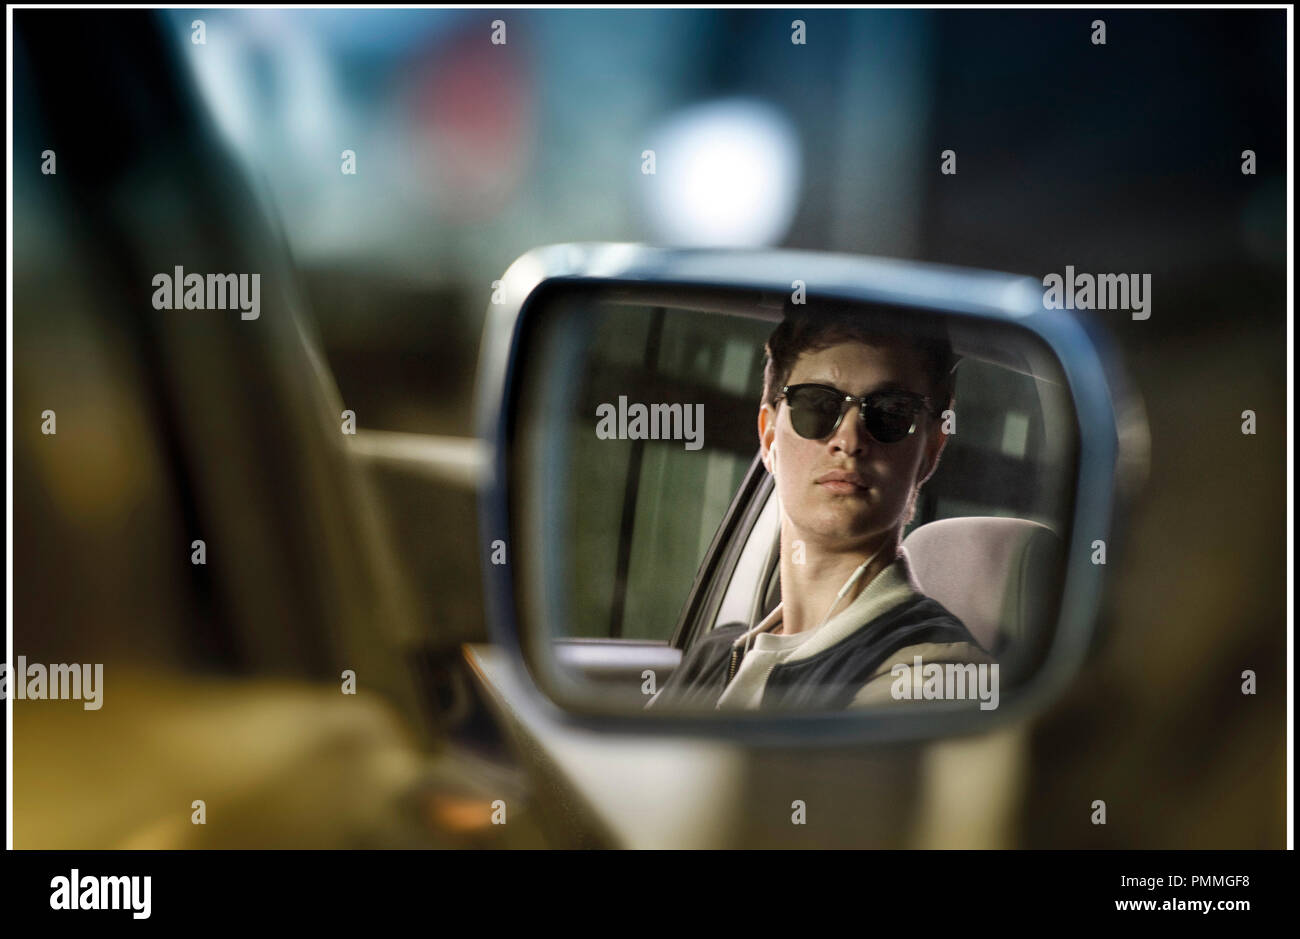 14eb44c0f8 ... Films - Double Negative - Media Rights Capital   DR BABY DRIVER de  Edgar Wright 2017 GB USA avec Ansel Elgort retroviseur